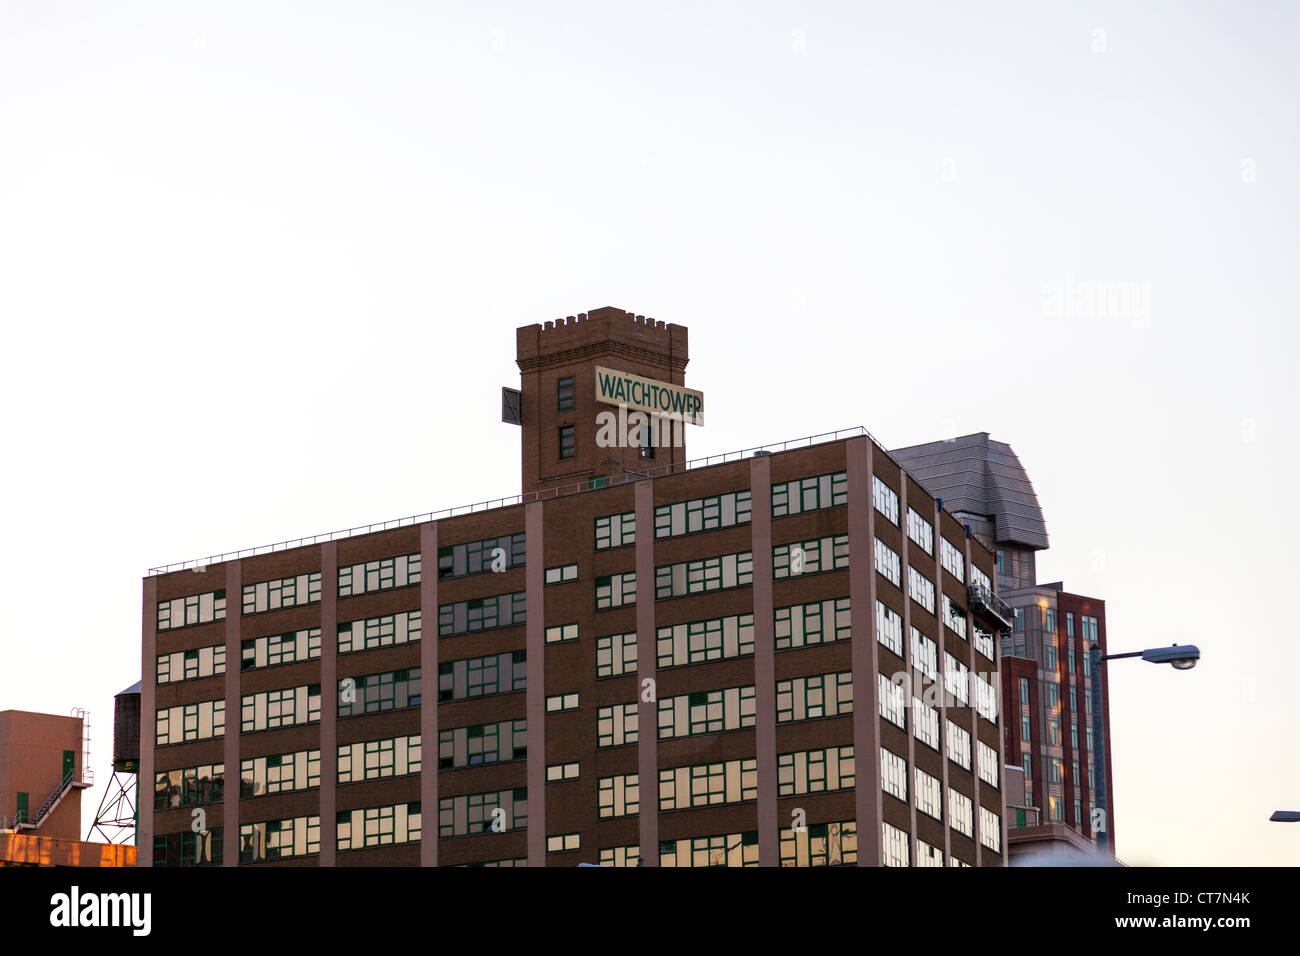 Jehovah's Witness The Watchtower Bible and Tract Society of New York building exterior, Brooklyn - Stock Image